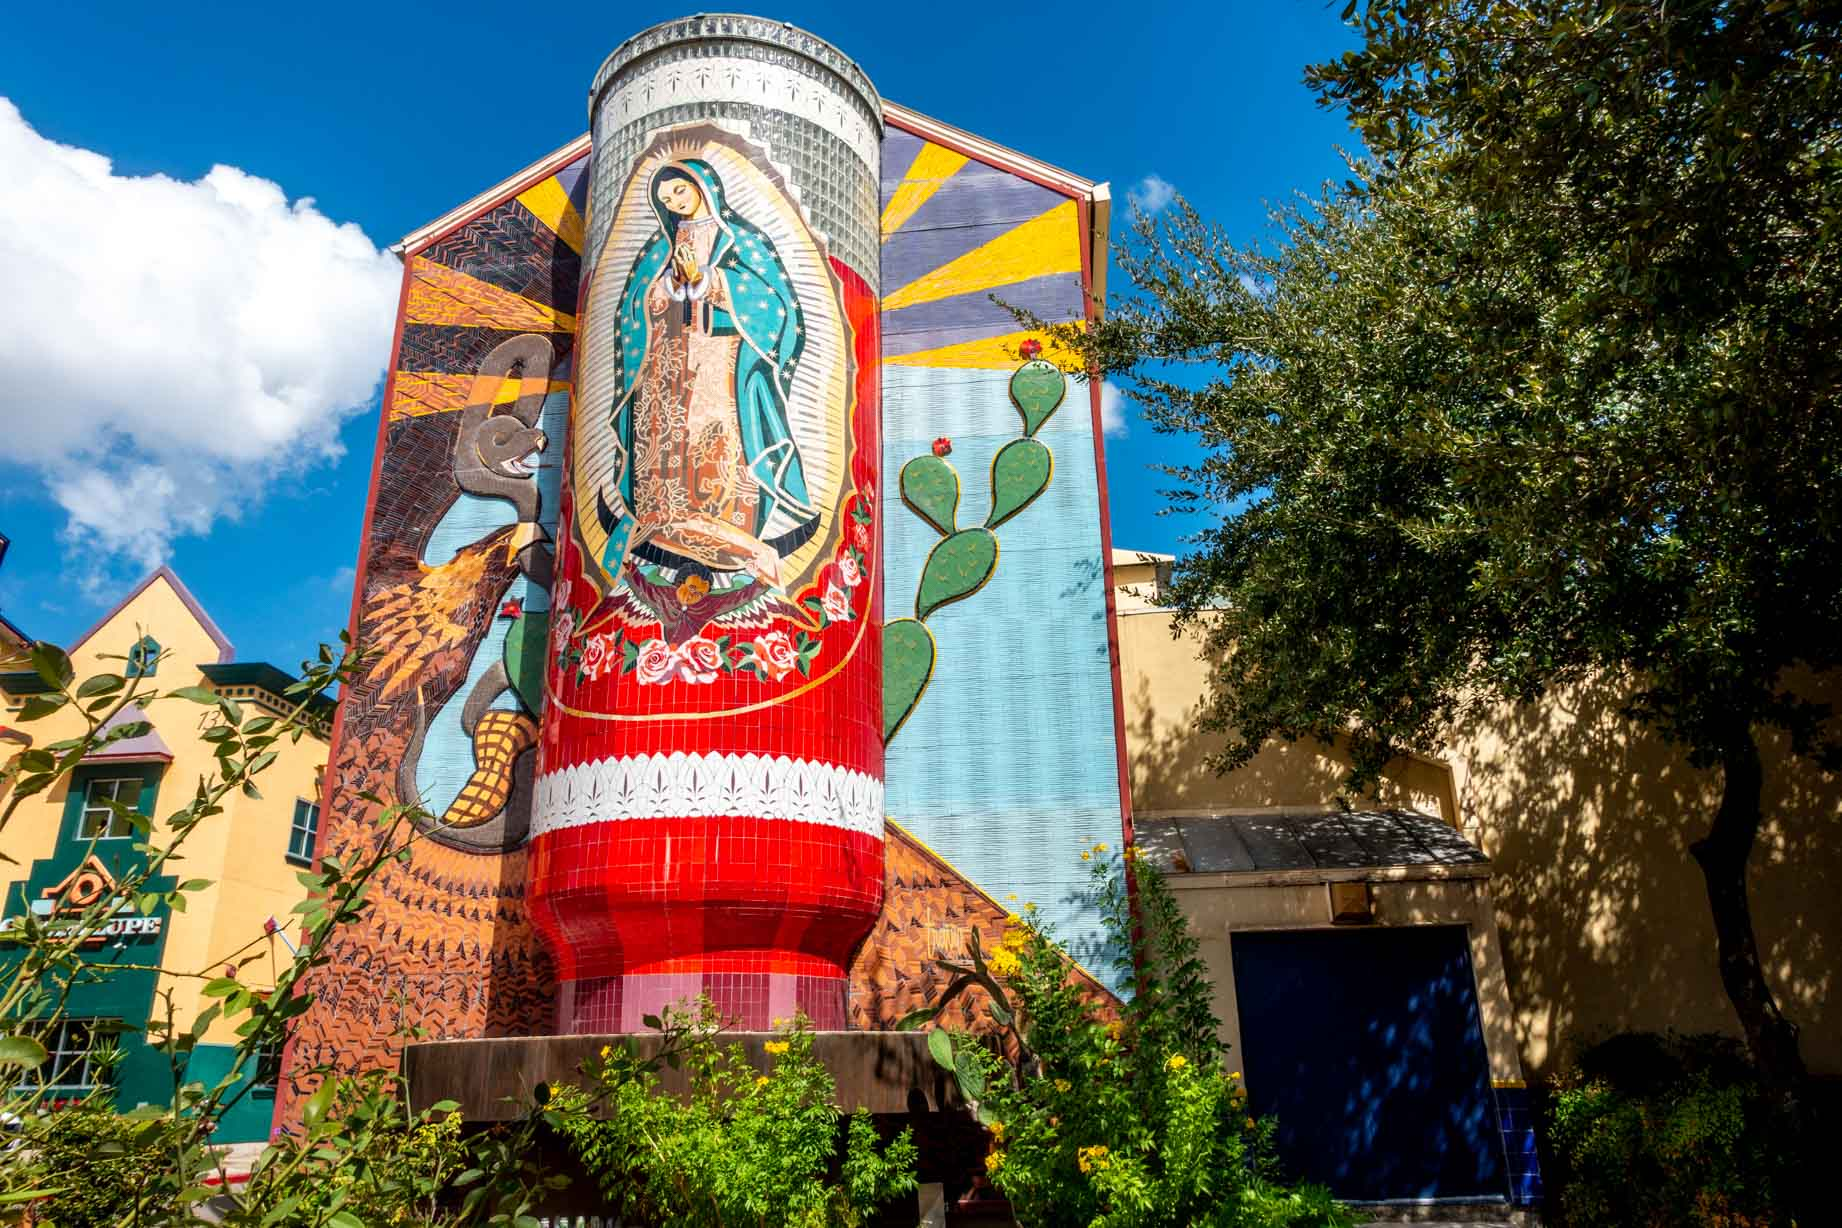 Mosaic of the Virgin of Guadalupe in shape of votive candle